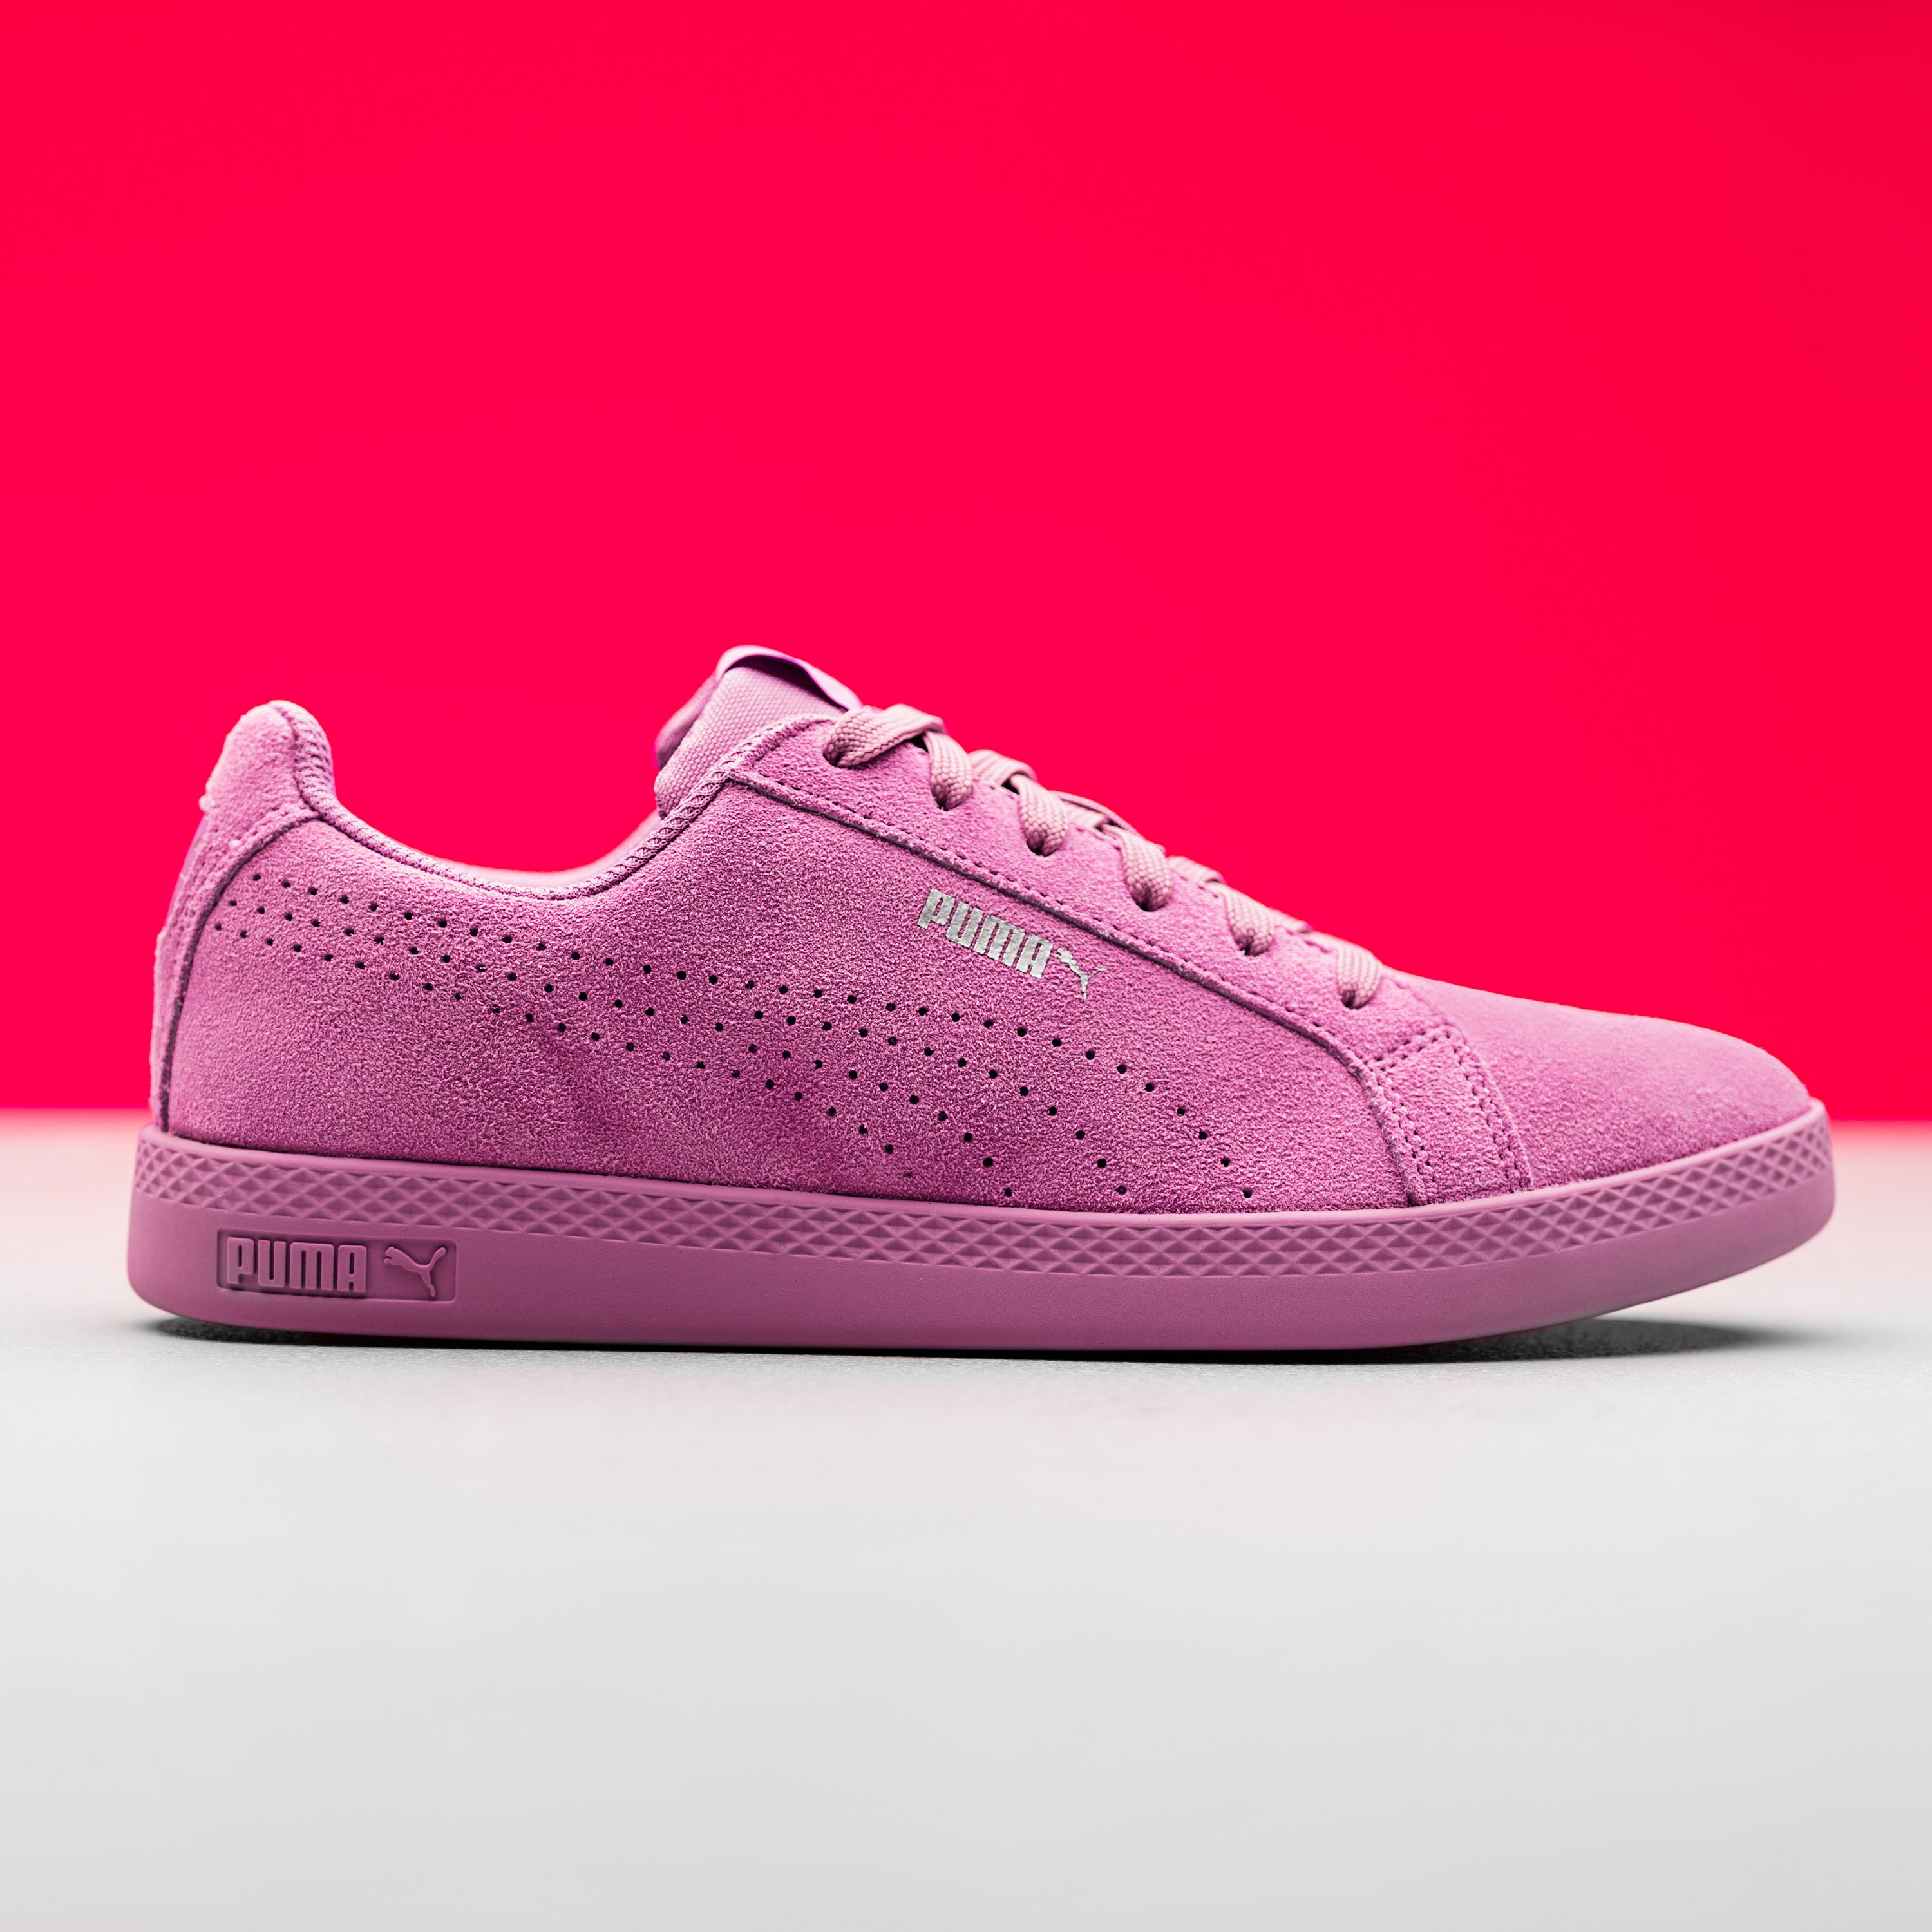 105462dde80e Adding a pop of pink and texture to your wardrobe this Autumn Winter will  brighten up those gloomy days. The Puma Smash Suede trainers are the  perfect ...